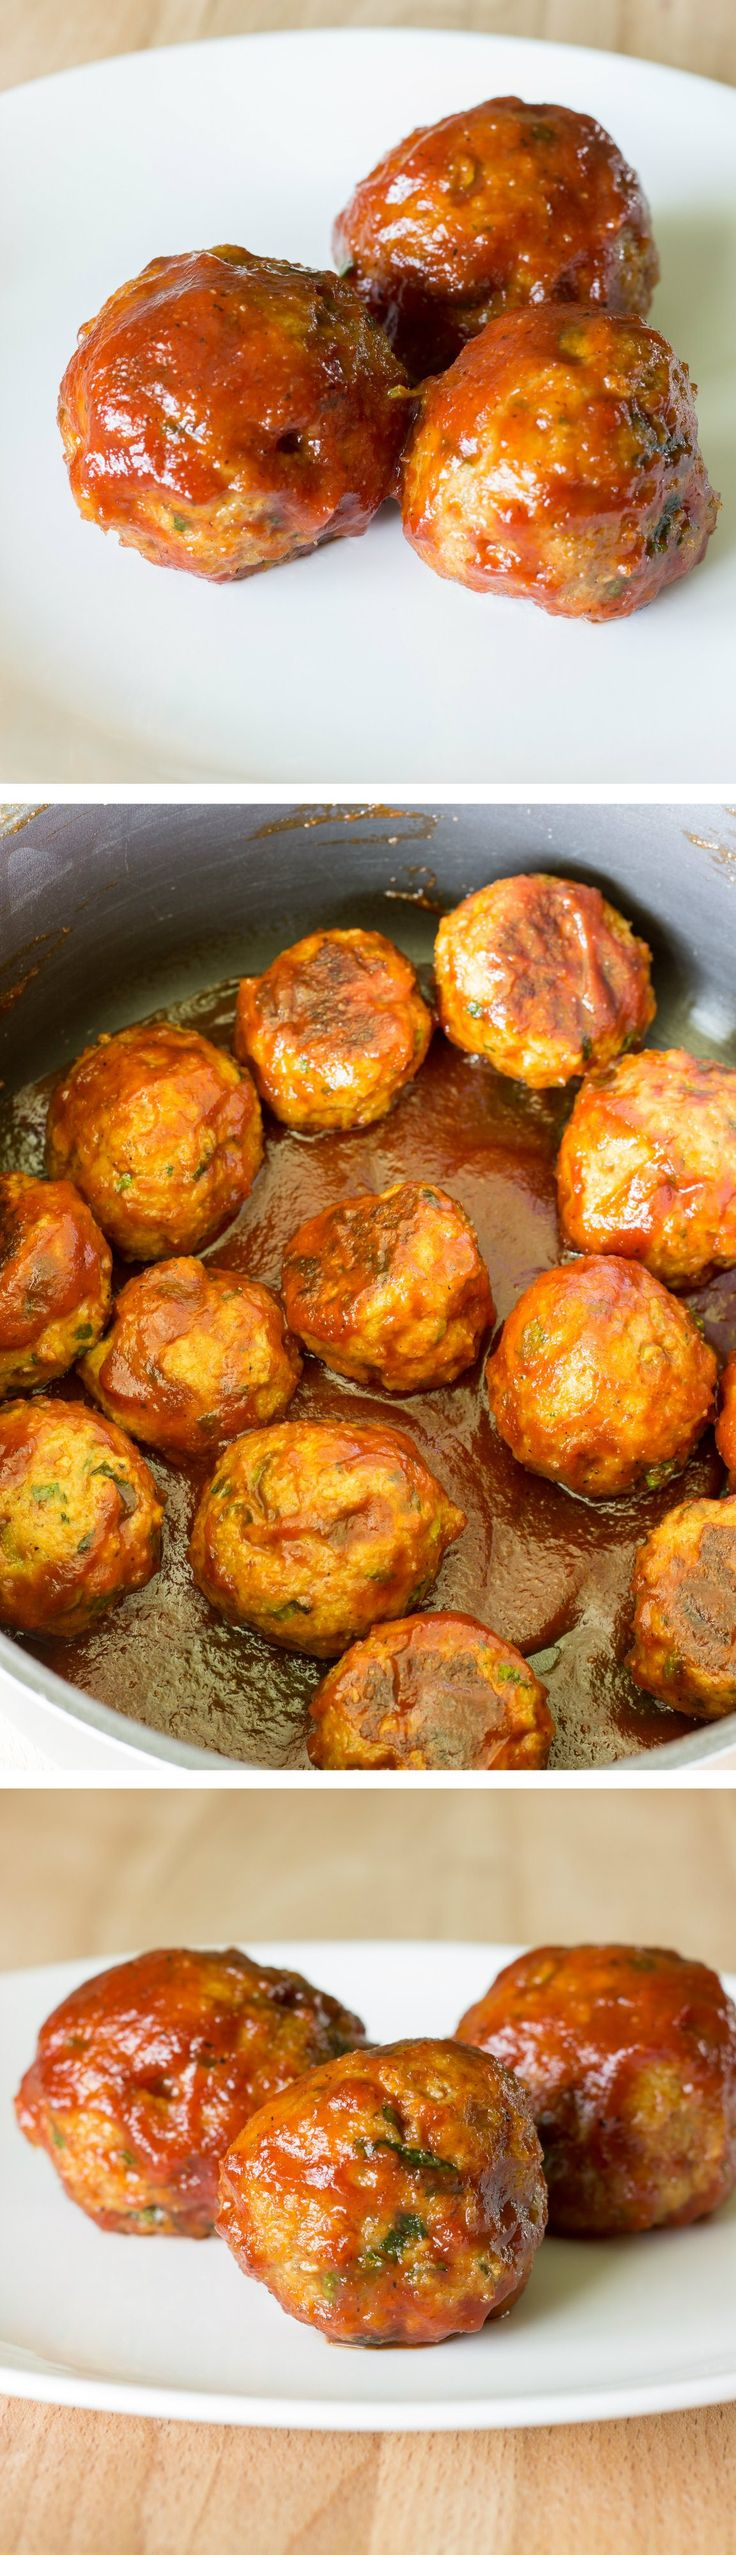 Honey Barbeque Chicken Meatballs – Flavorful chicken meatballs are baked, then simmered in a sweet & tangy homemade BBQ sauce.